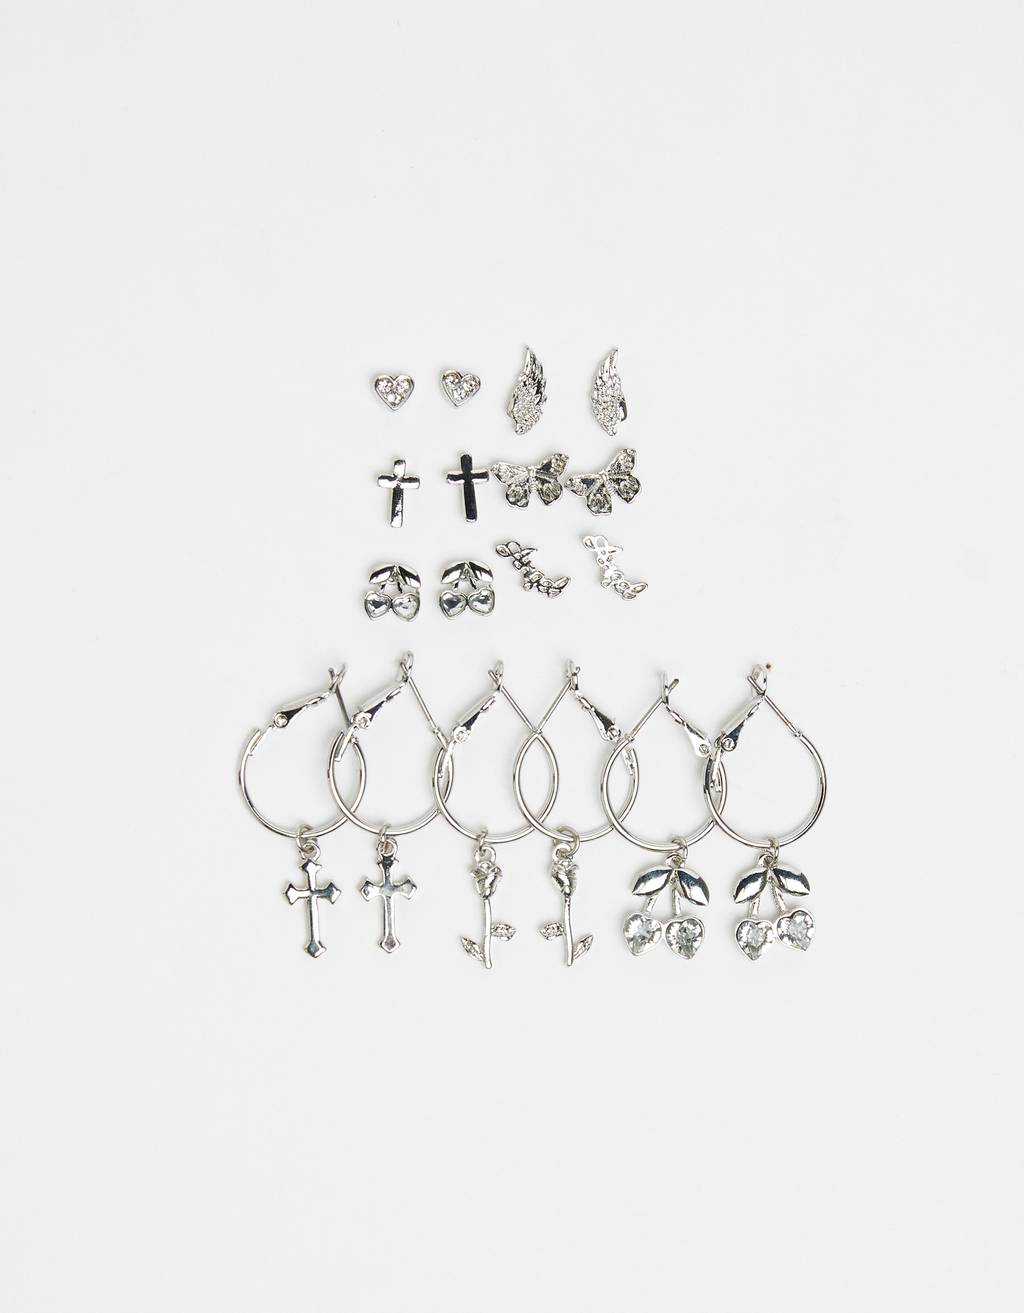 Set of rhinestone earrings